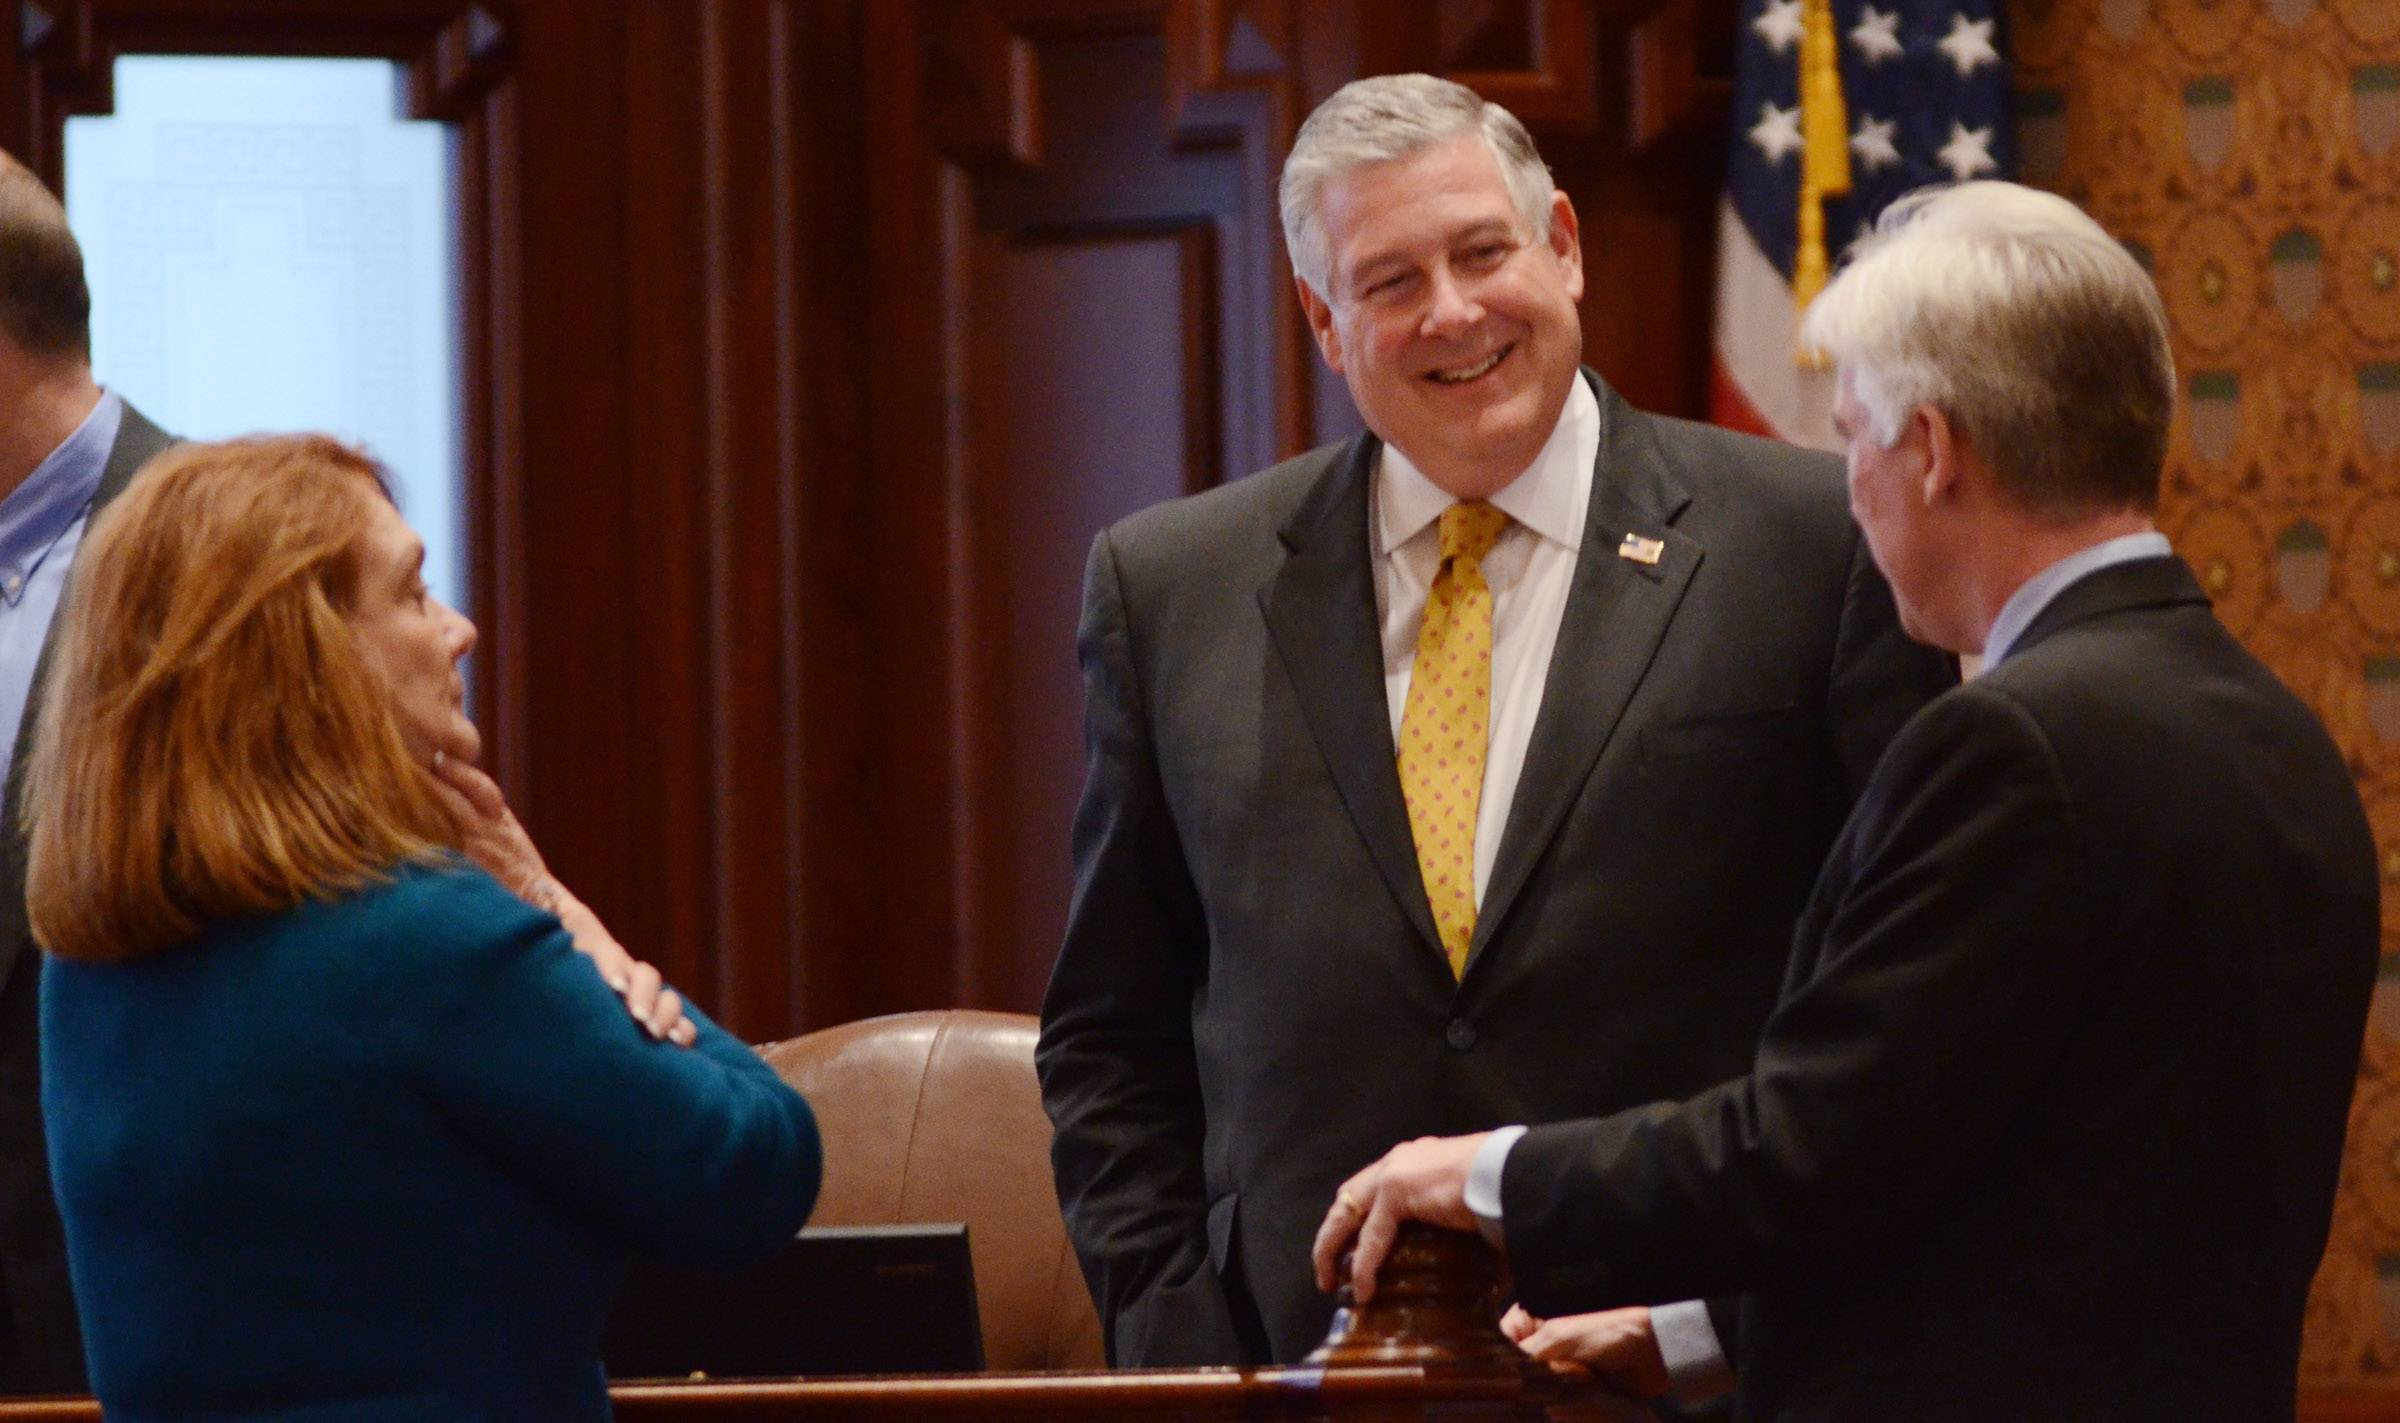 State Sen. Kirk Dillard talks with state Sens. Pam Althoff, a McHenry Republican, and Michael Connelly, a Lisle Republican, on the floor of the state Senate Wednesday.